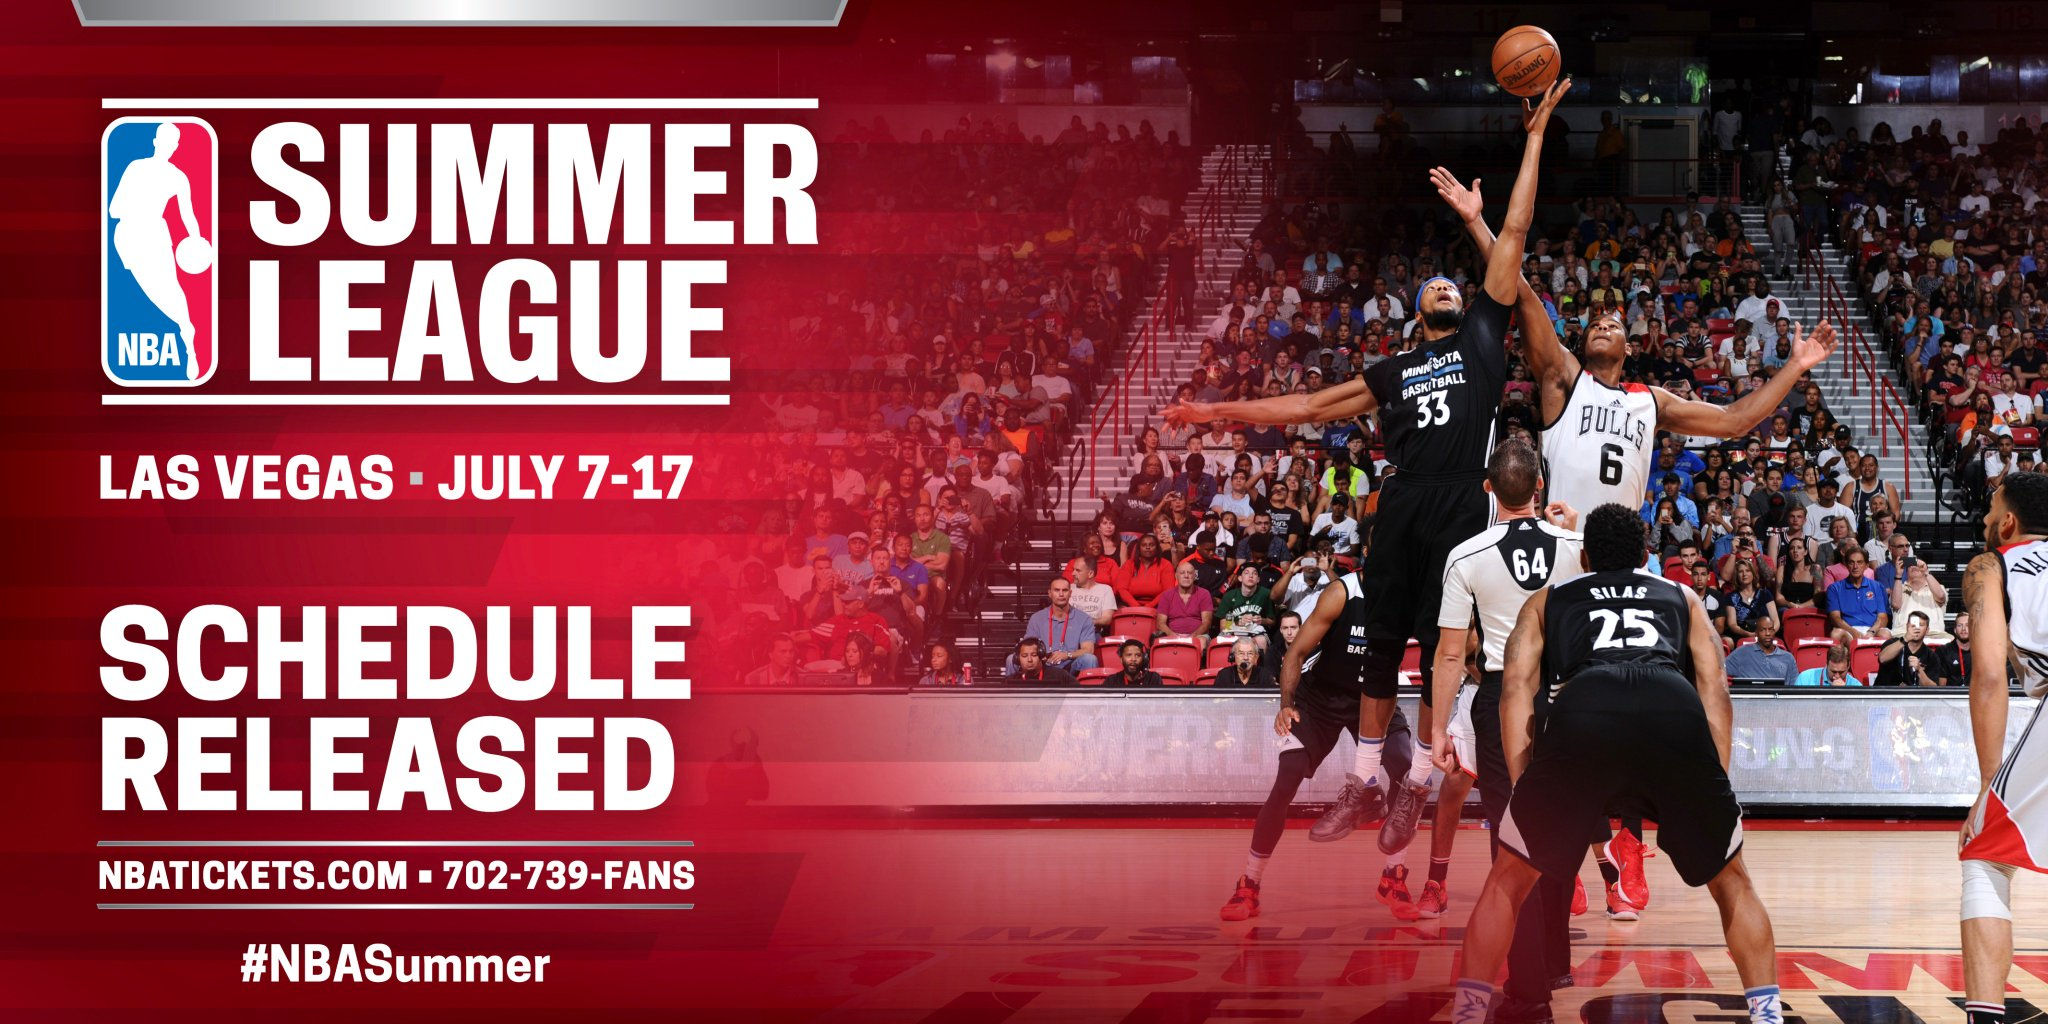 The 11-day, 67 game #NBASummer League schedule has been released: https://t.co/PQxhyatnaK https://t.co/jw8dHiTJC9